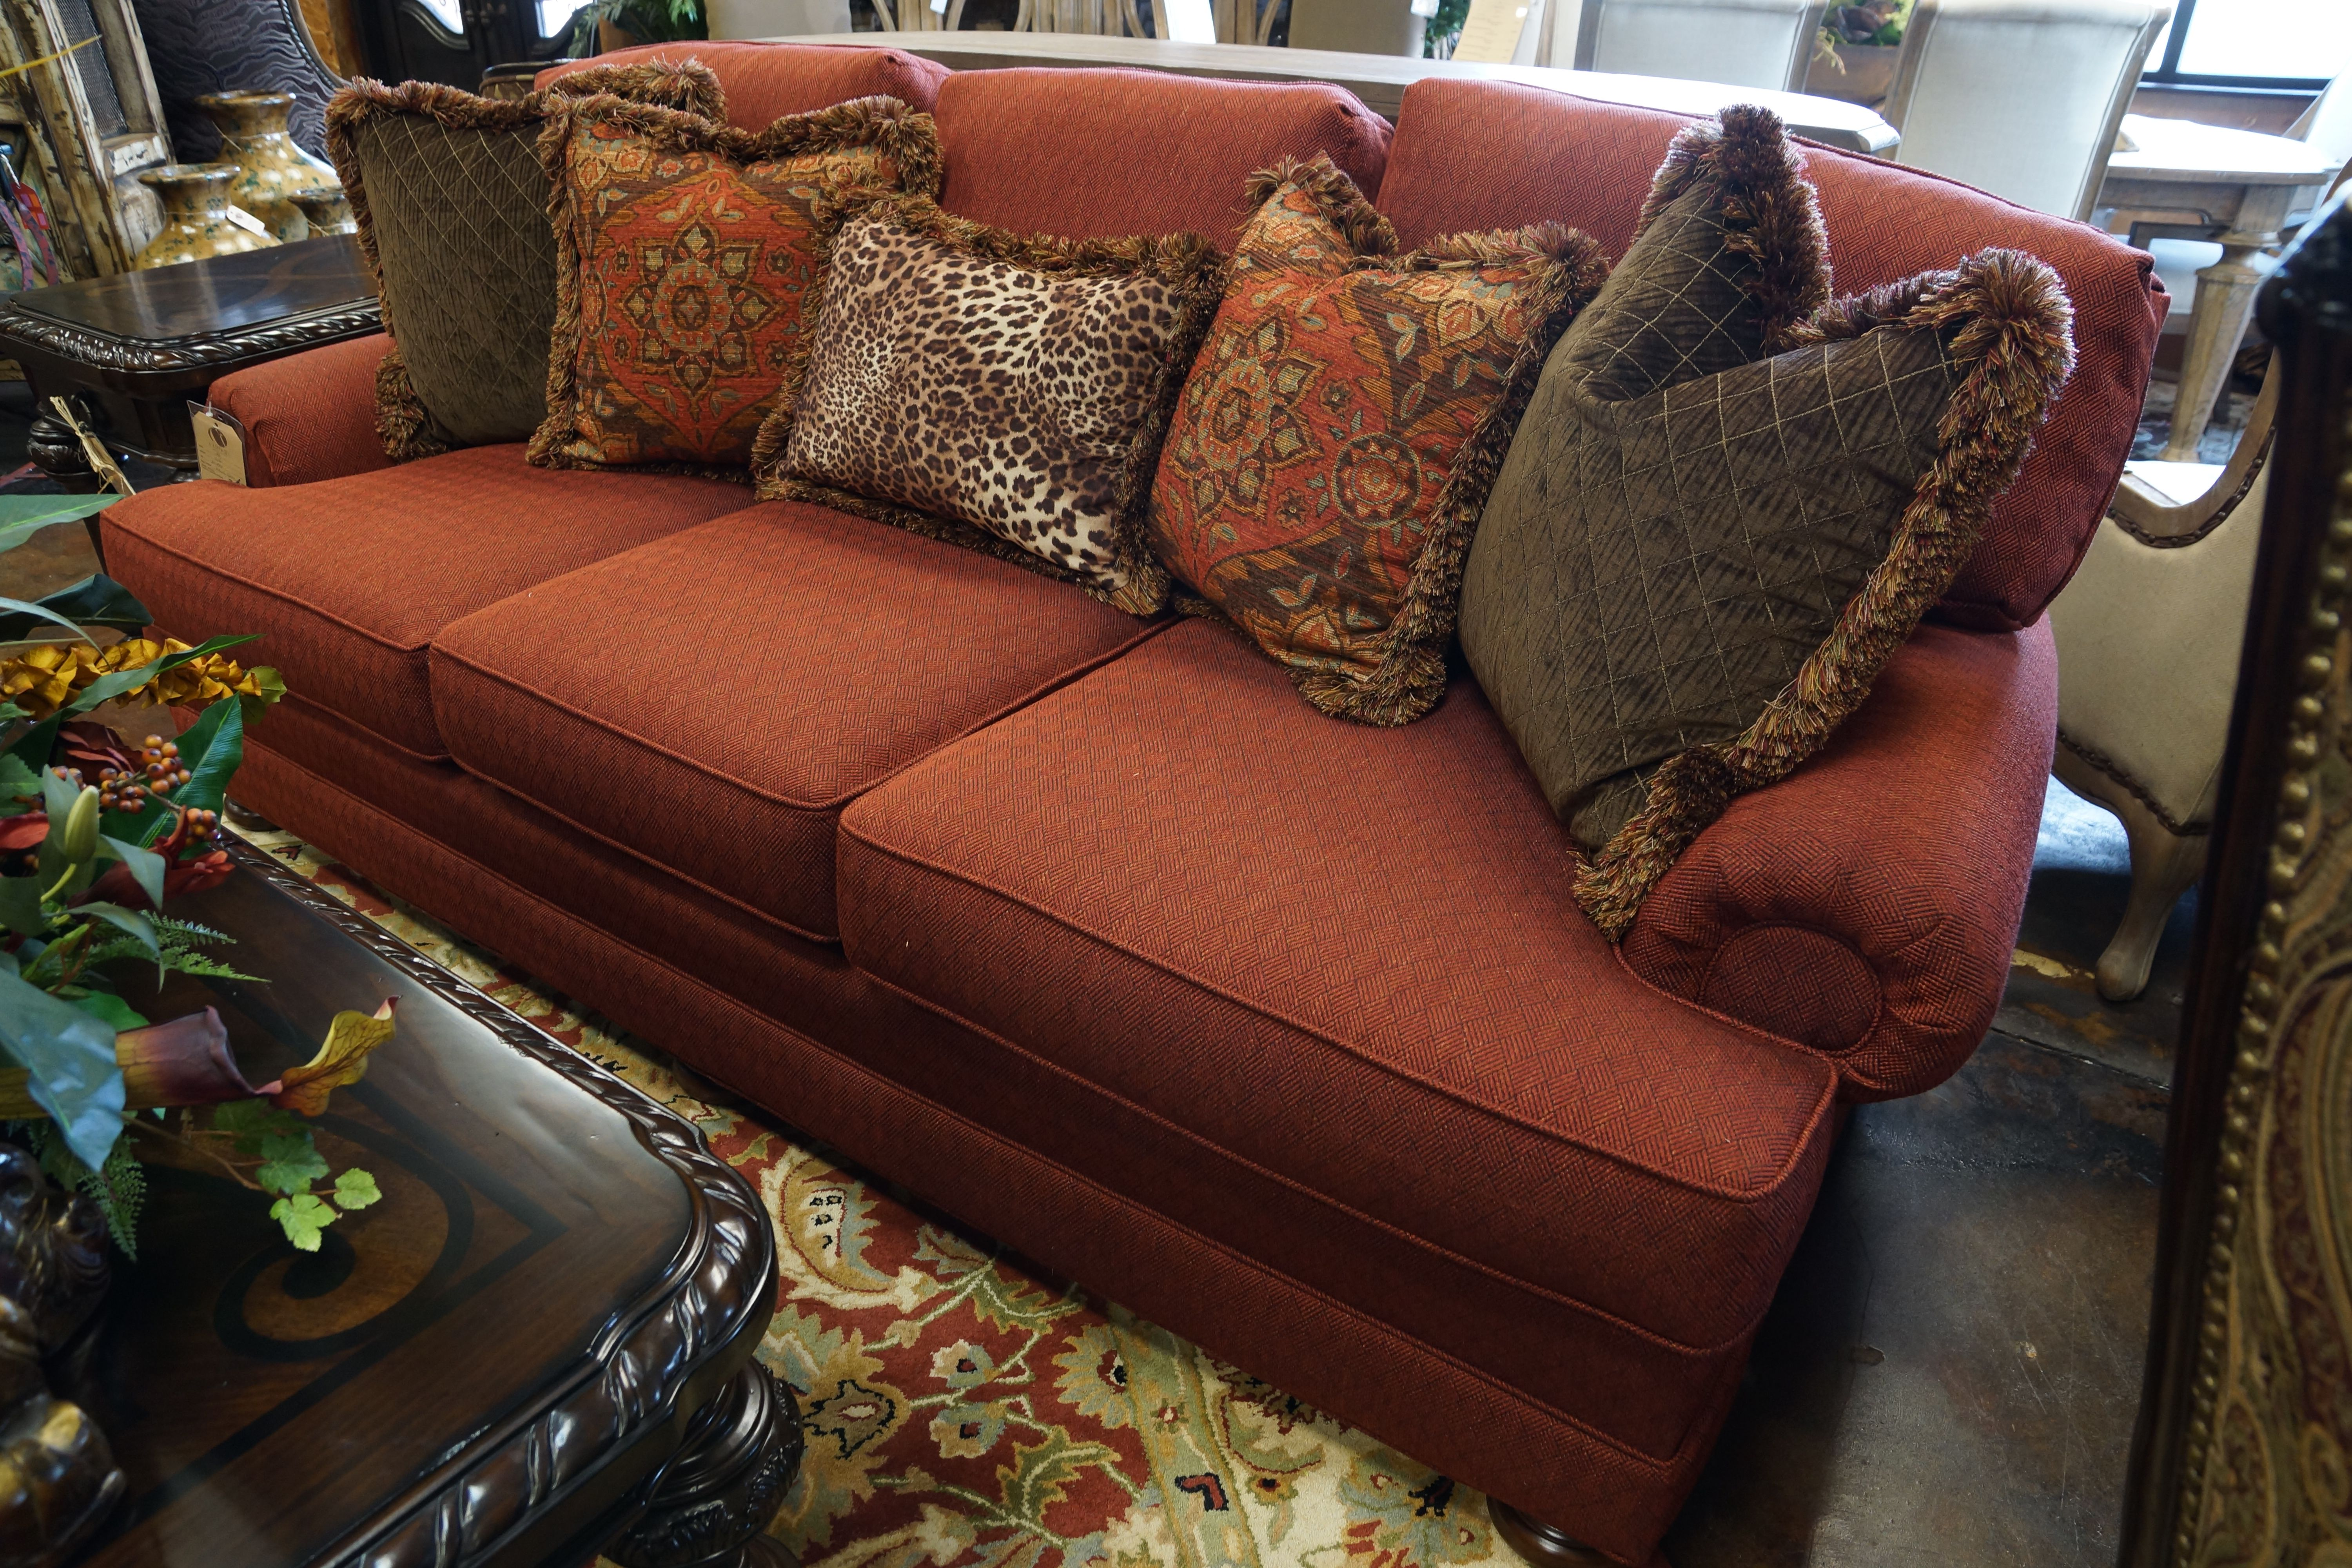 Available at CARTER'S FURNITURE in Midland,Texas 432-682 ...